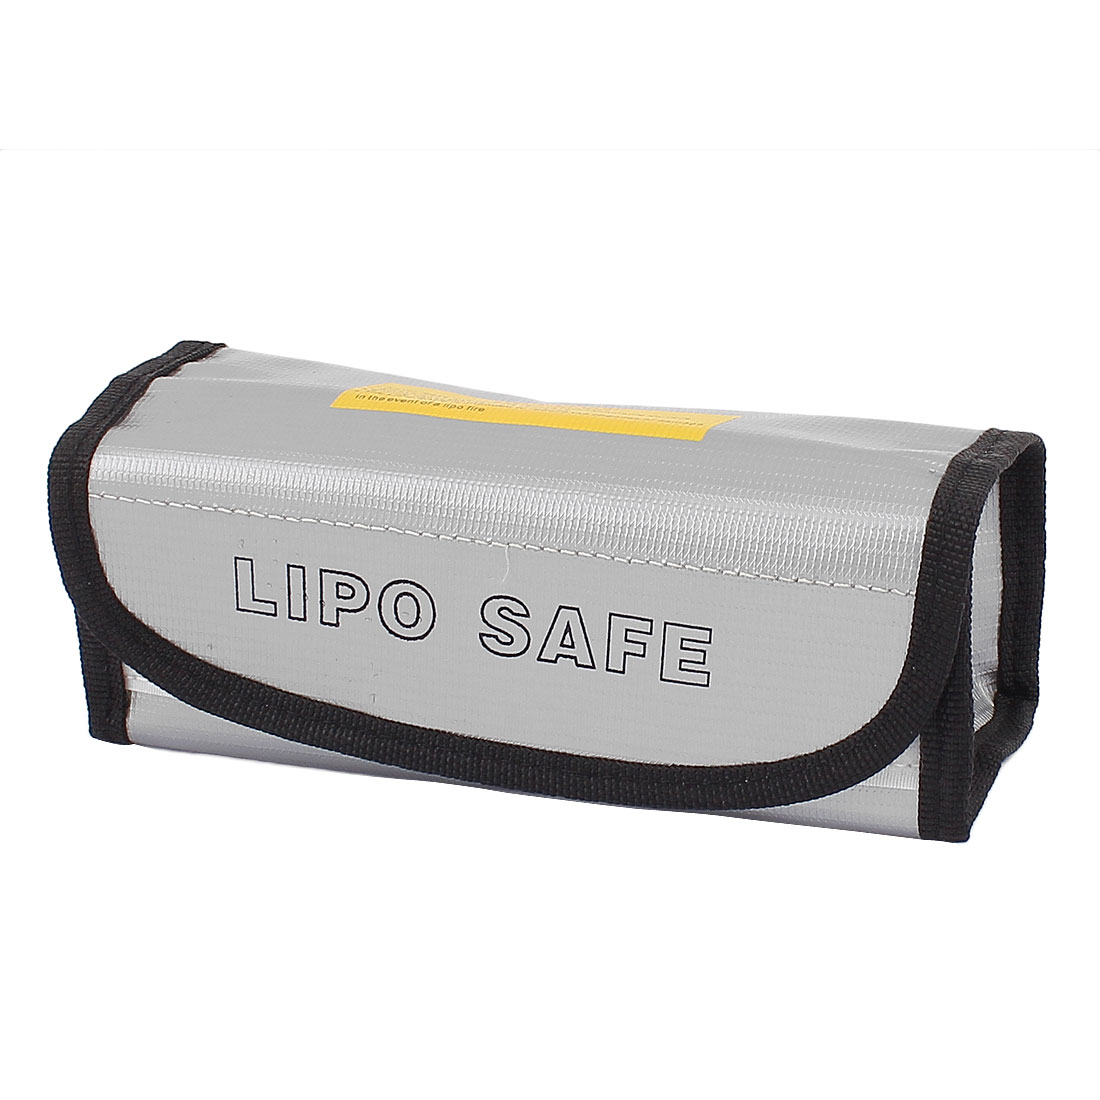 UXCELL Lipo Battery Fireproof Explosionproof Bag Storage Guard Safe Charging Holder 185Mm X 75Mm X 60Mm